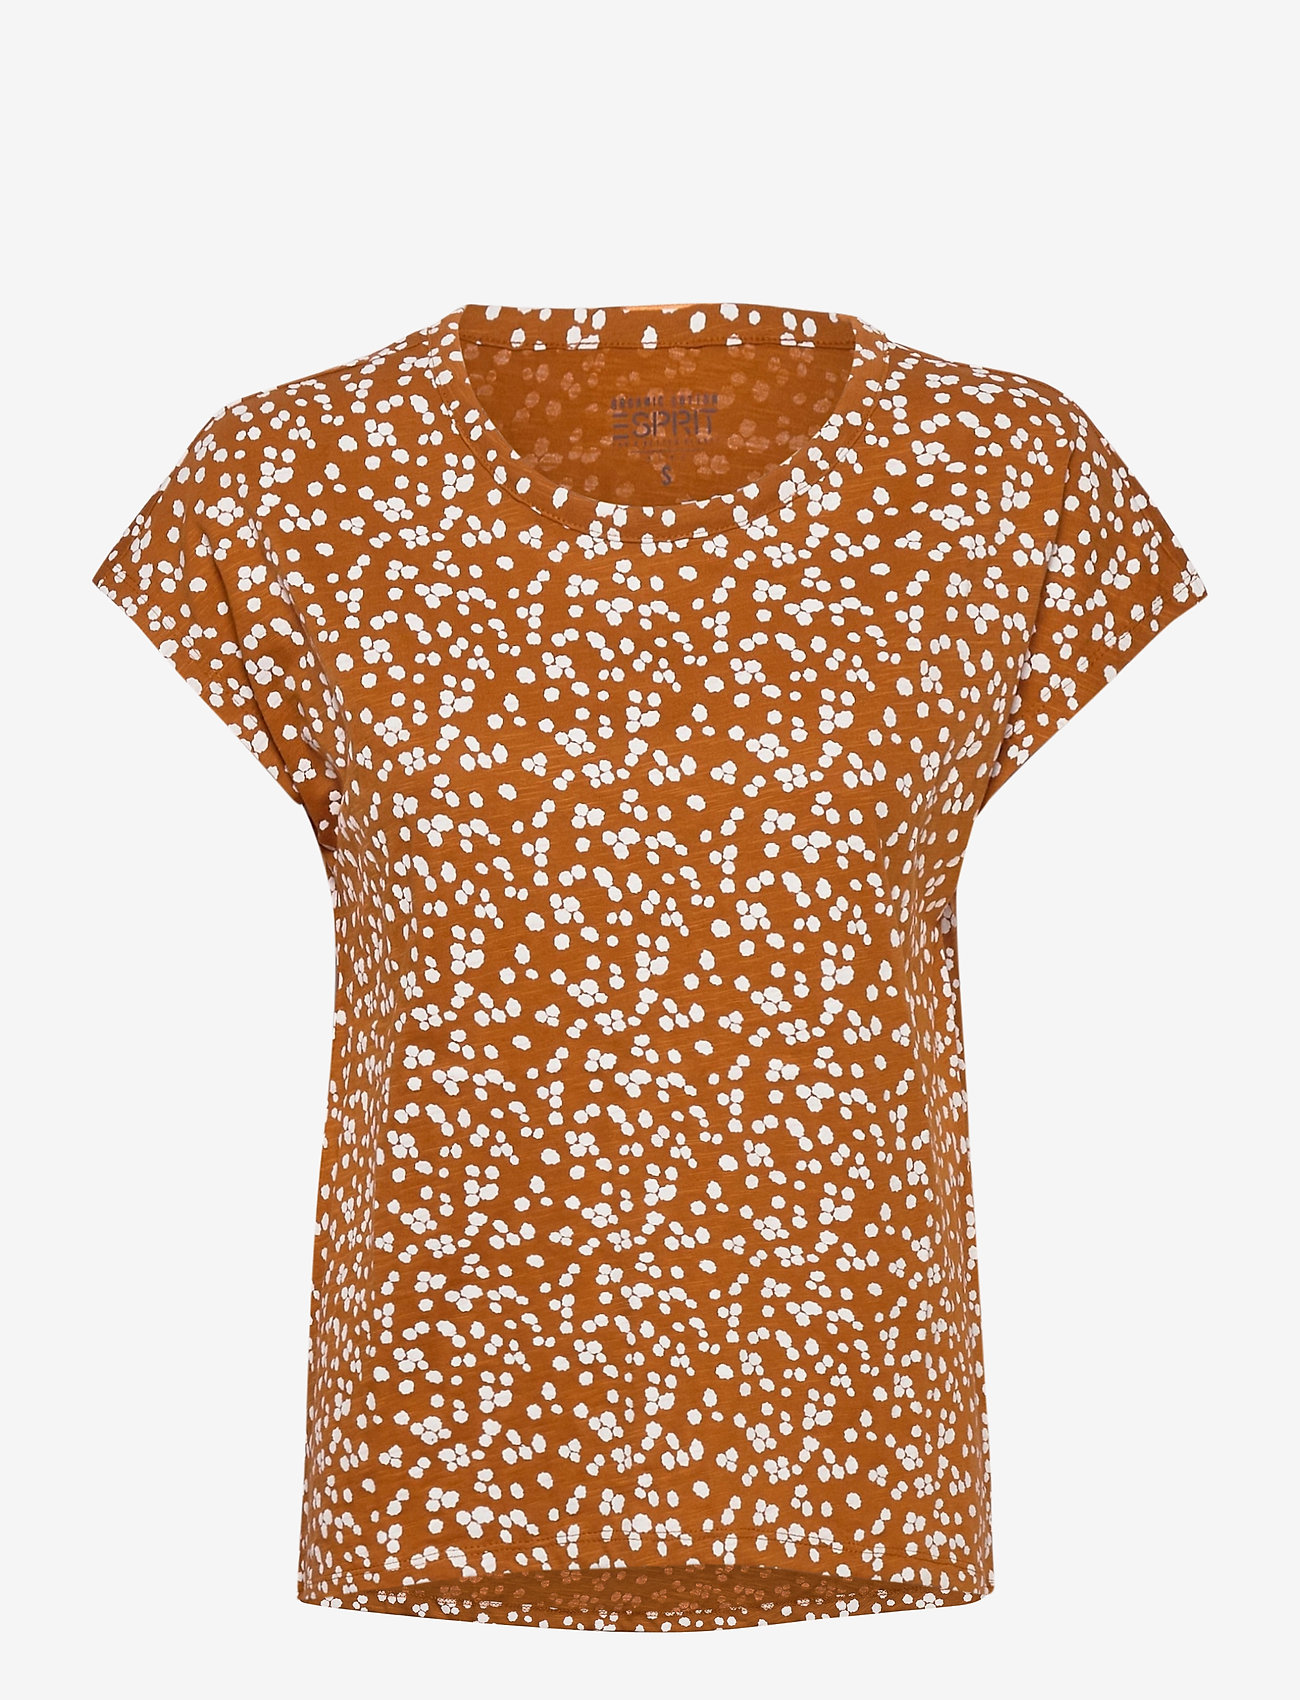 Esprit Casual - T-Shirts - t-shirts - rust brown - 0